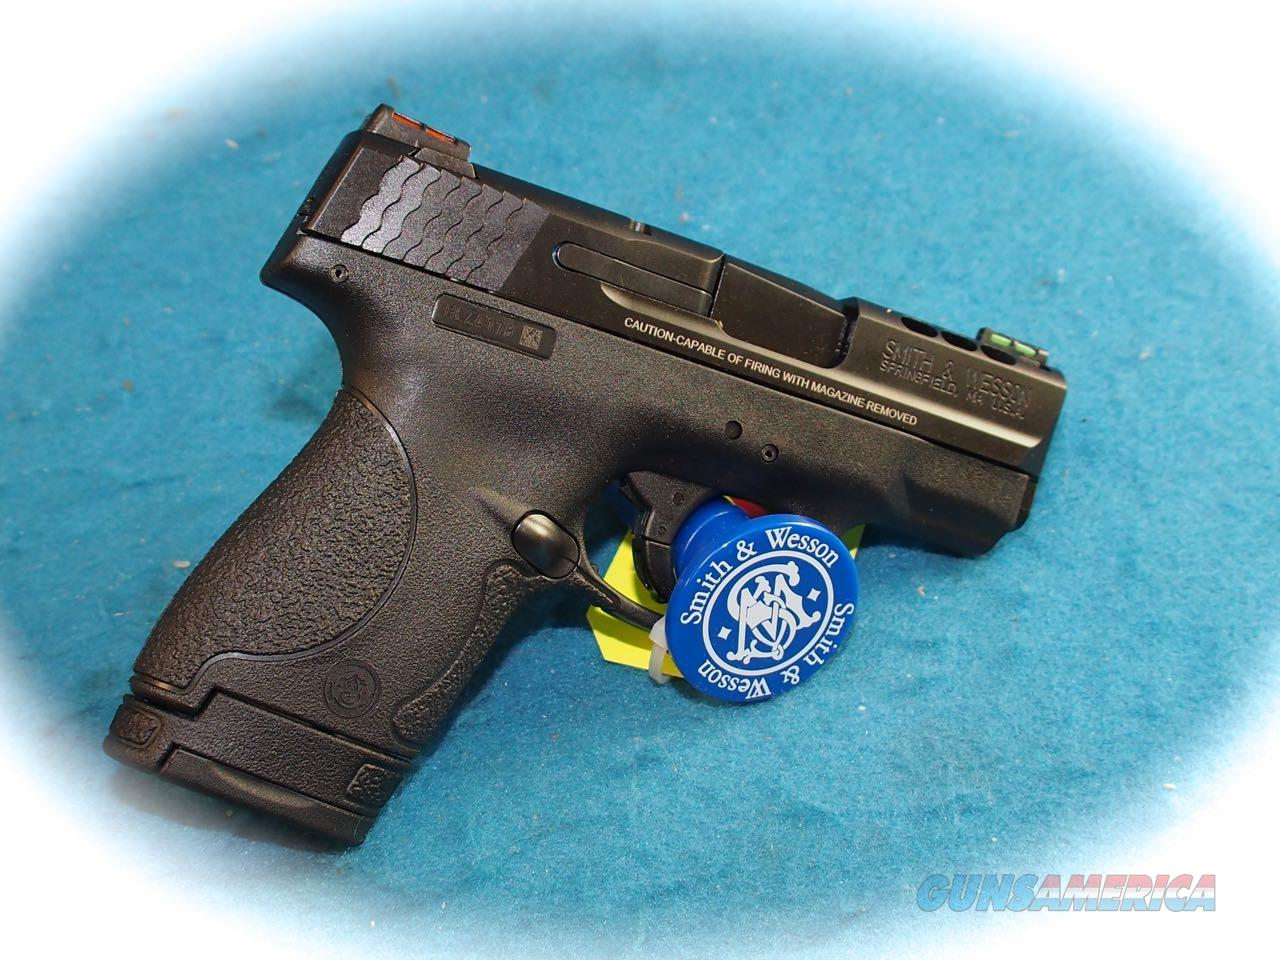 Smith & Wesson M&P Shield .40 S&W Performance Center Ported Pistol **New**  Guns > Pistols > Smith & Wesson Pistols - Autos > Shield